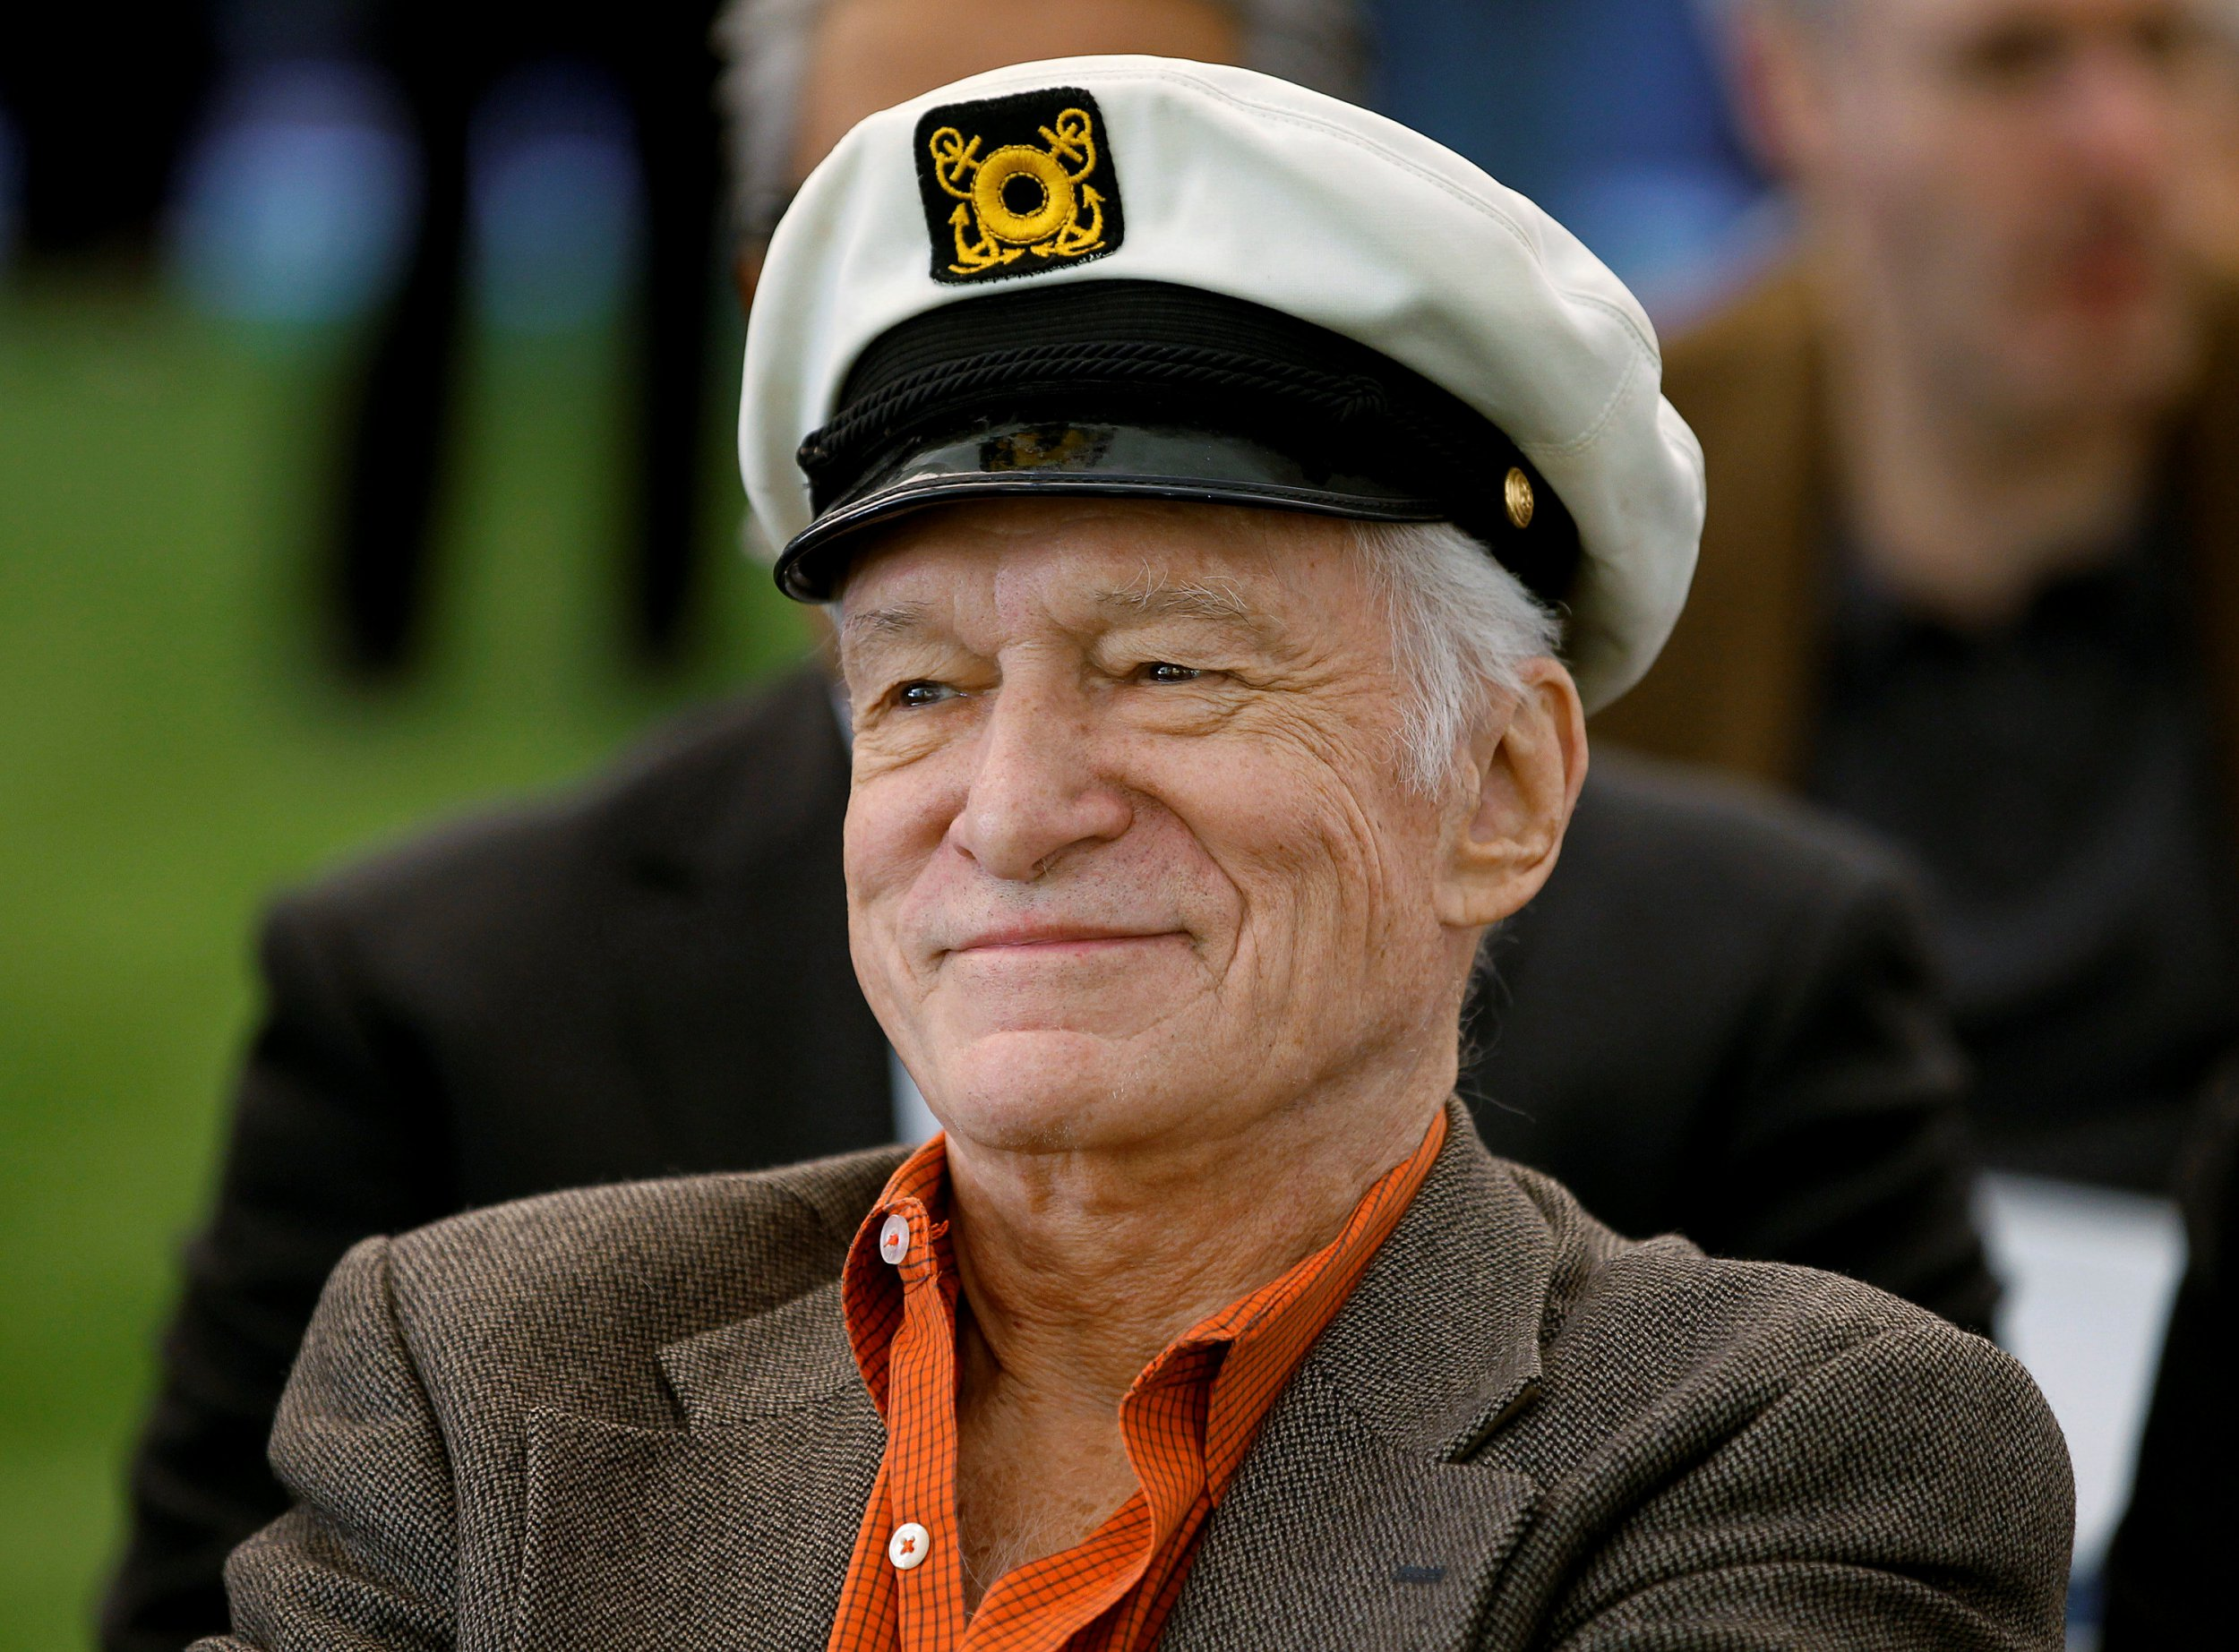 Death certificate reveals Playboy founder Hugh Hefner 'died of heart failure and septicemia'